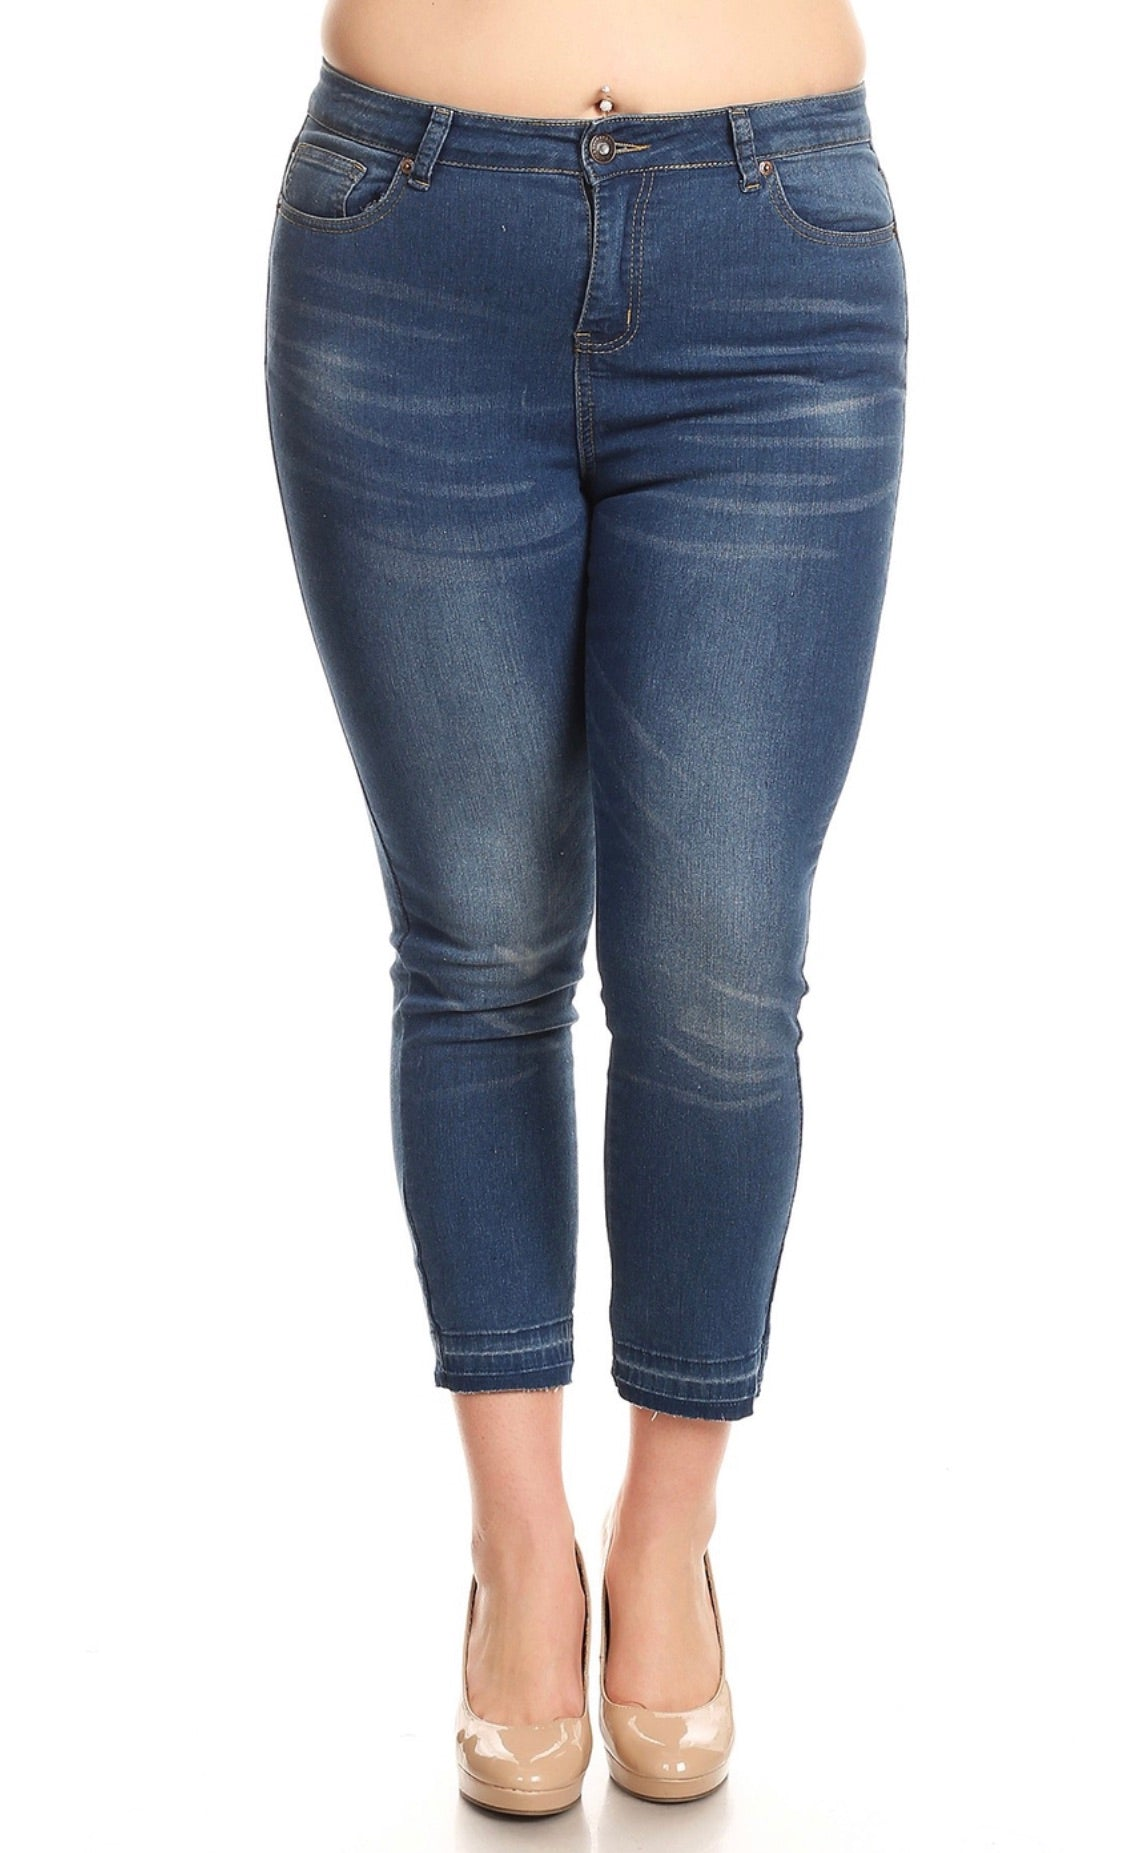 Enjoy Denim Brand Plus Size Skinny Jeans